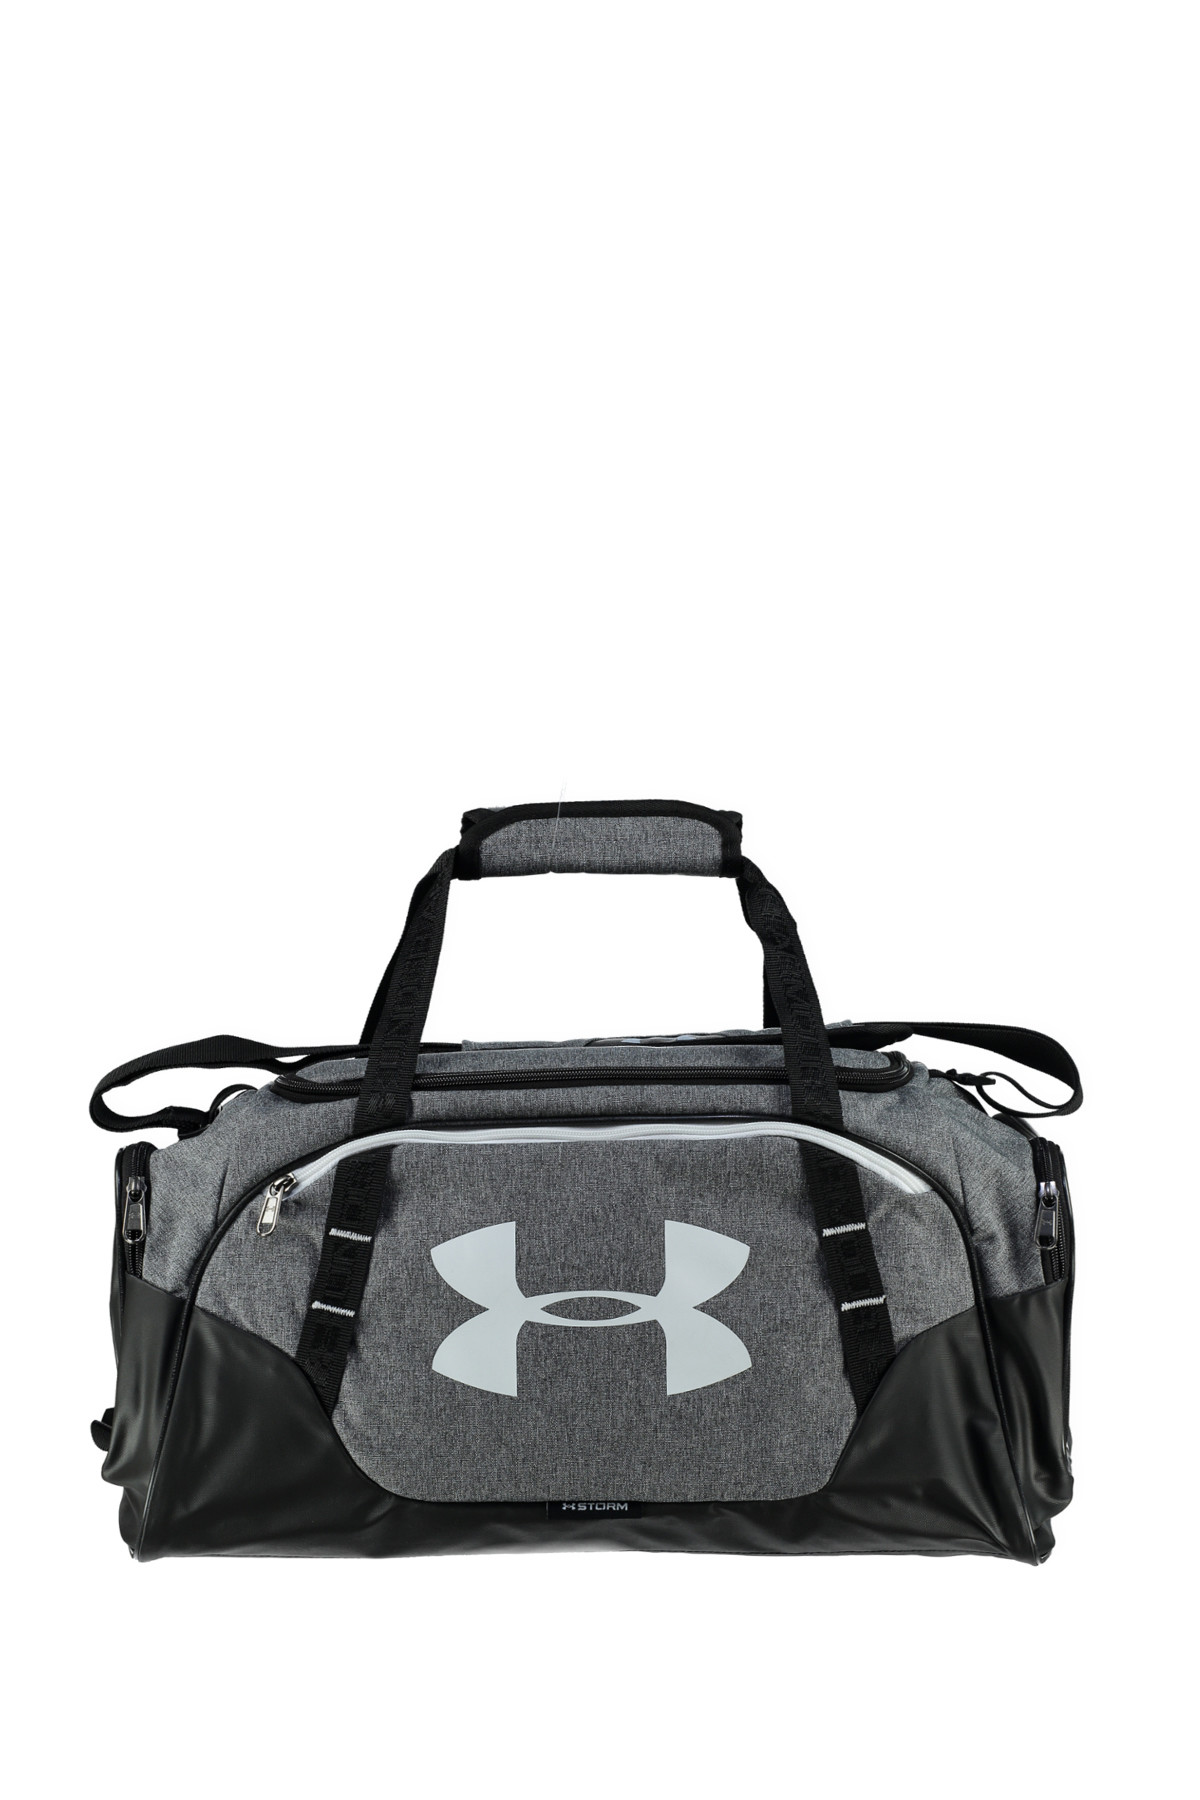 under armour unisex gri spor çanta - ua undeniable duffle 3.0 sm -